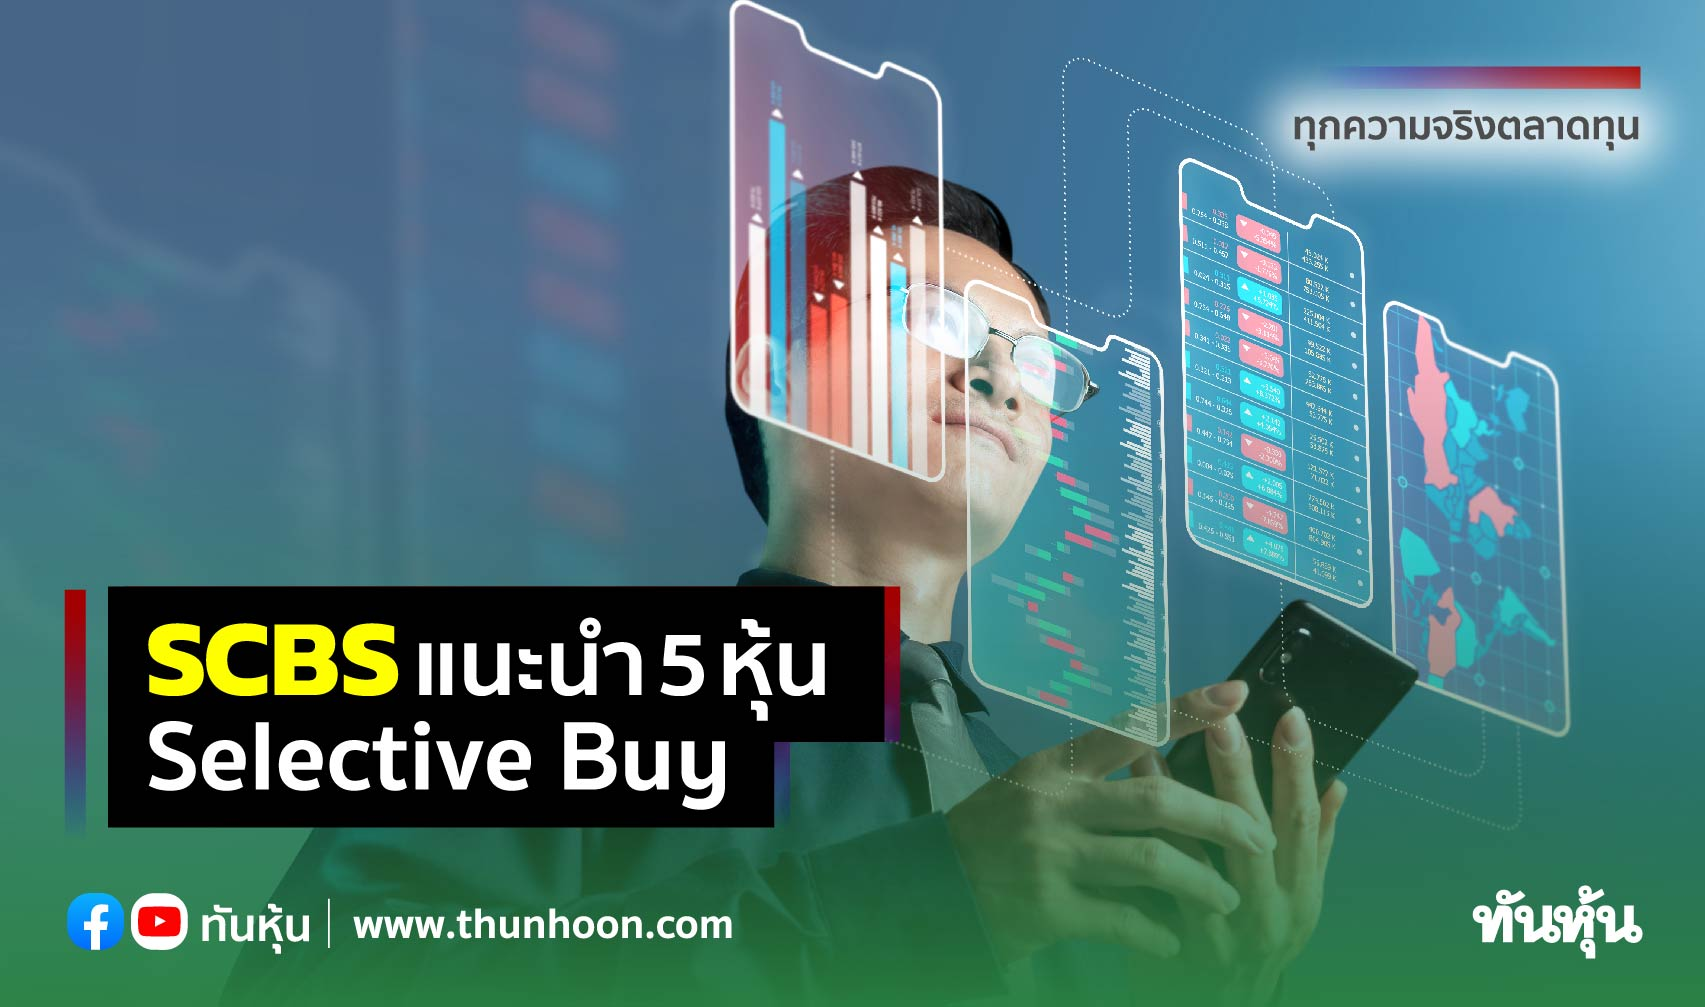 SCBS แนะนำ 5 หุ้น Selective Buy